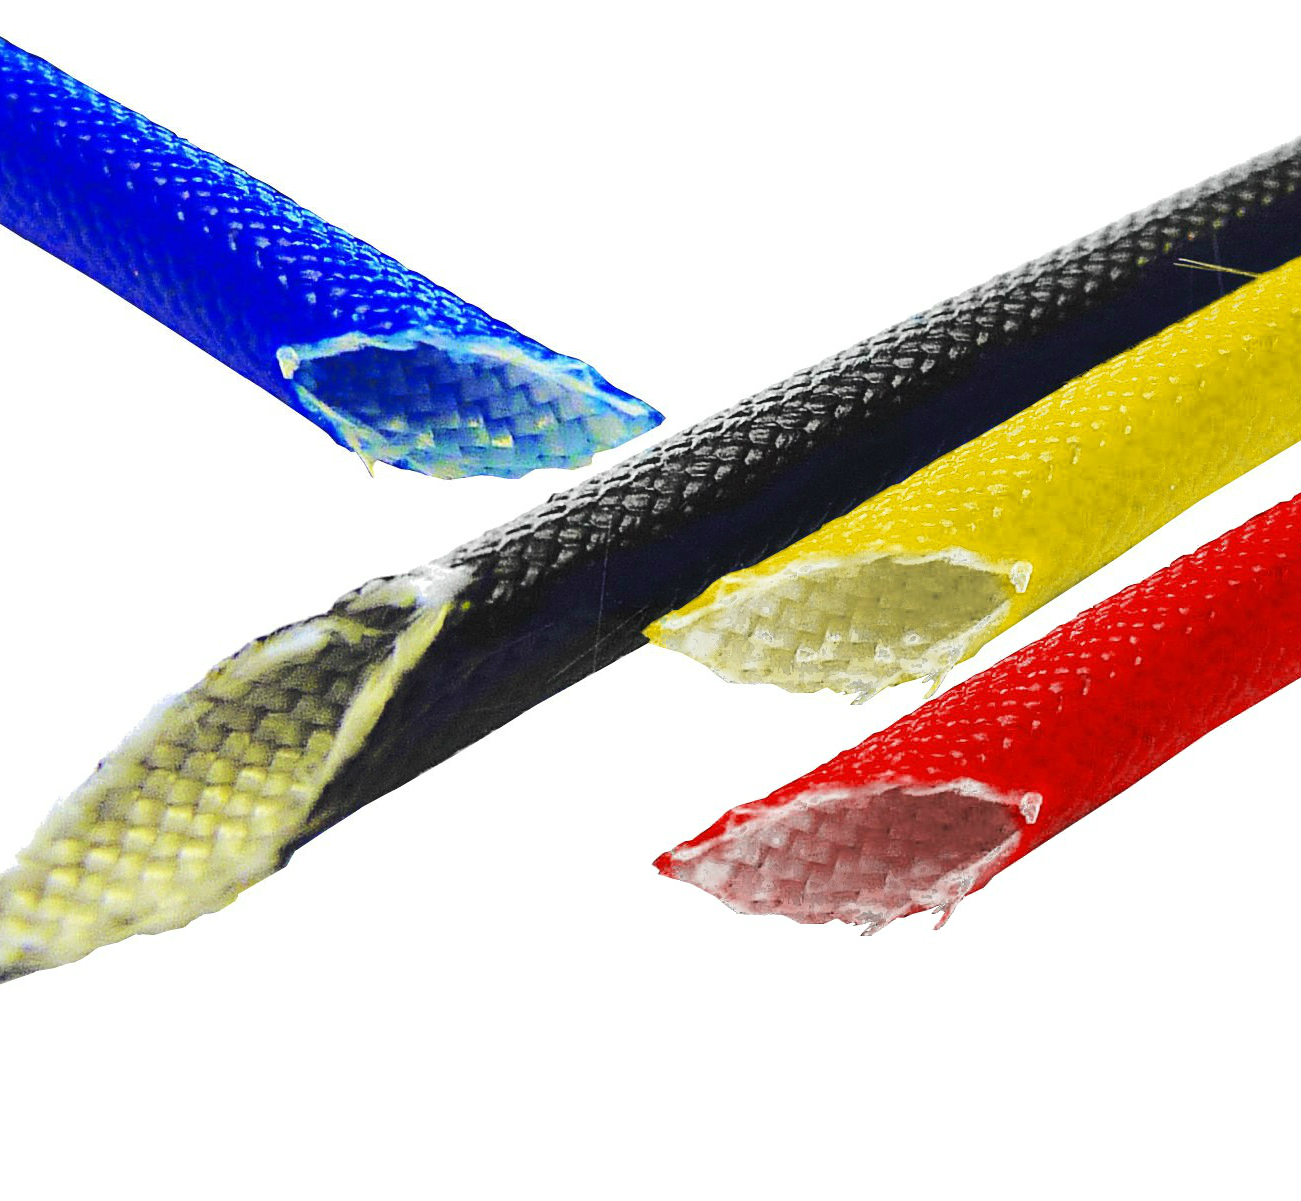 Vidaflex 900 Series - Acrylic Coated Glass Braid